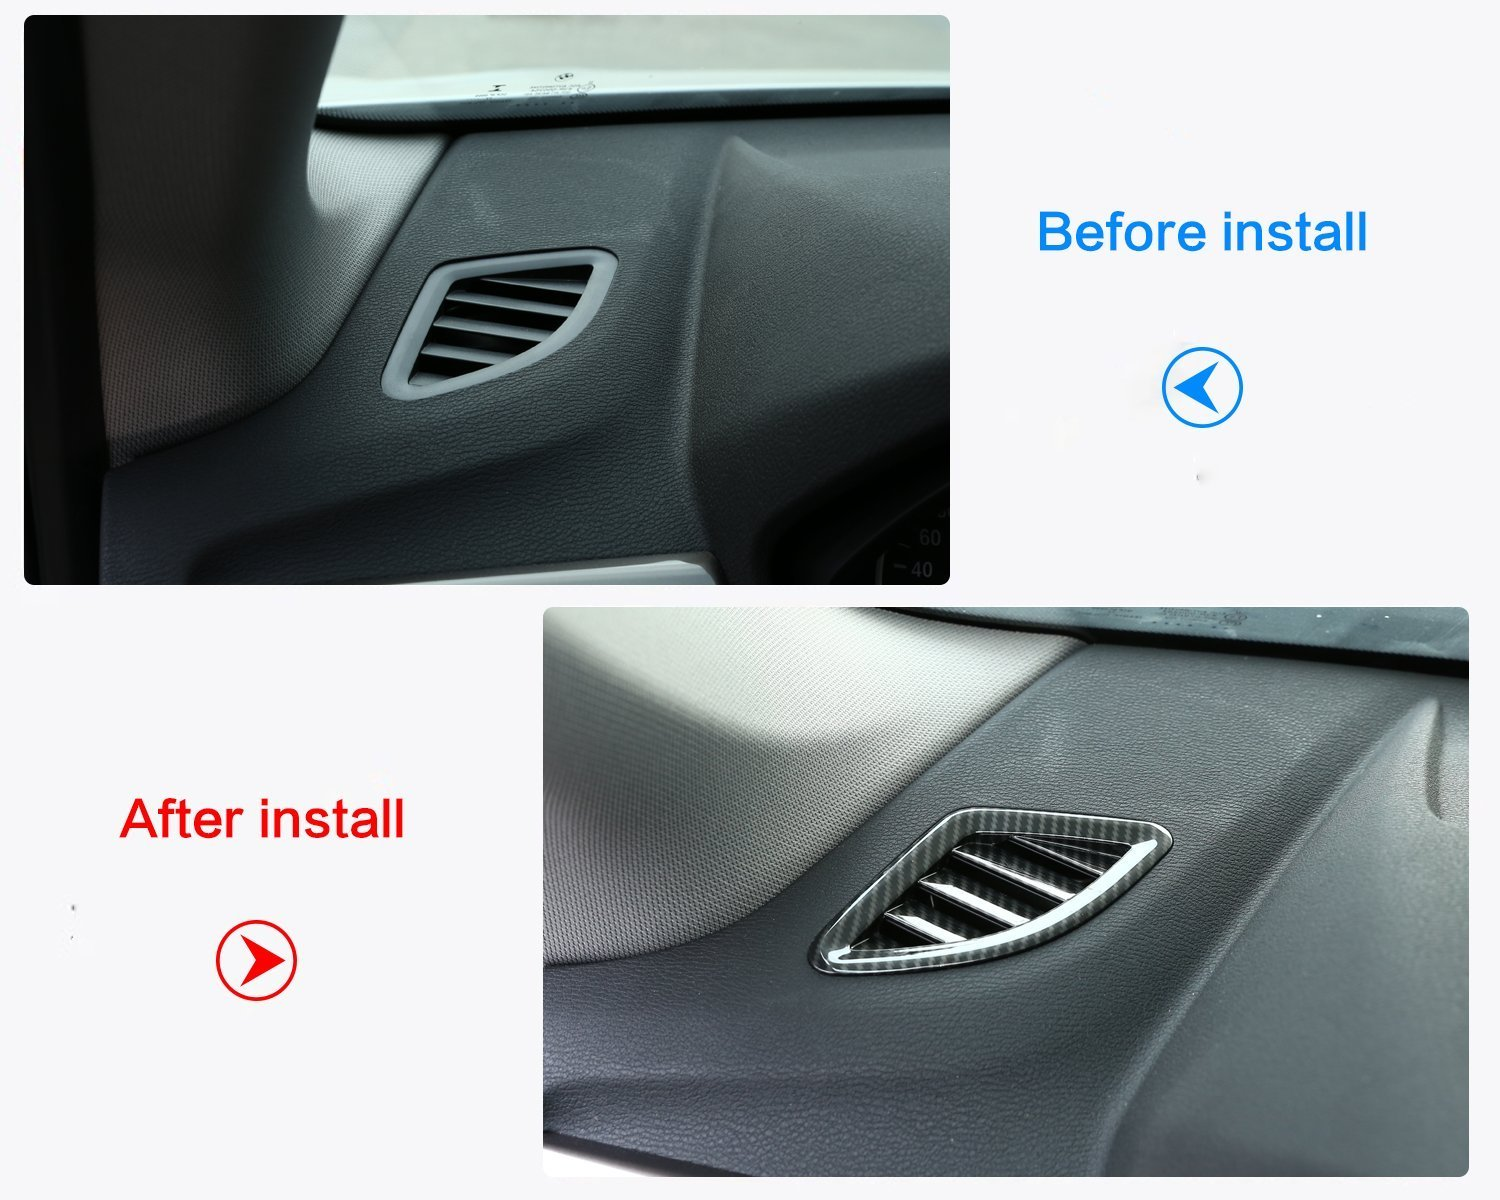 Carbon ABS Chrome Inside Decoration Side Dashboard AC Outlet Vent Frame Cover Trim Sticker Accessory For X1 F48 2016 2017 2018